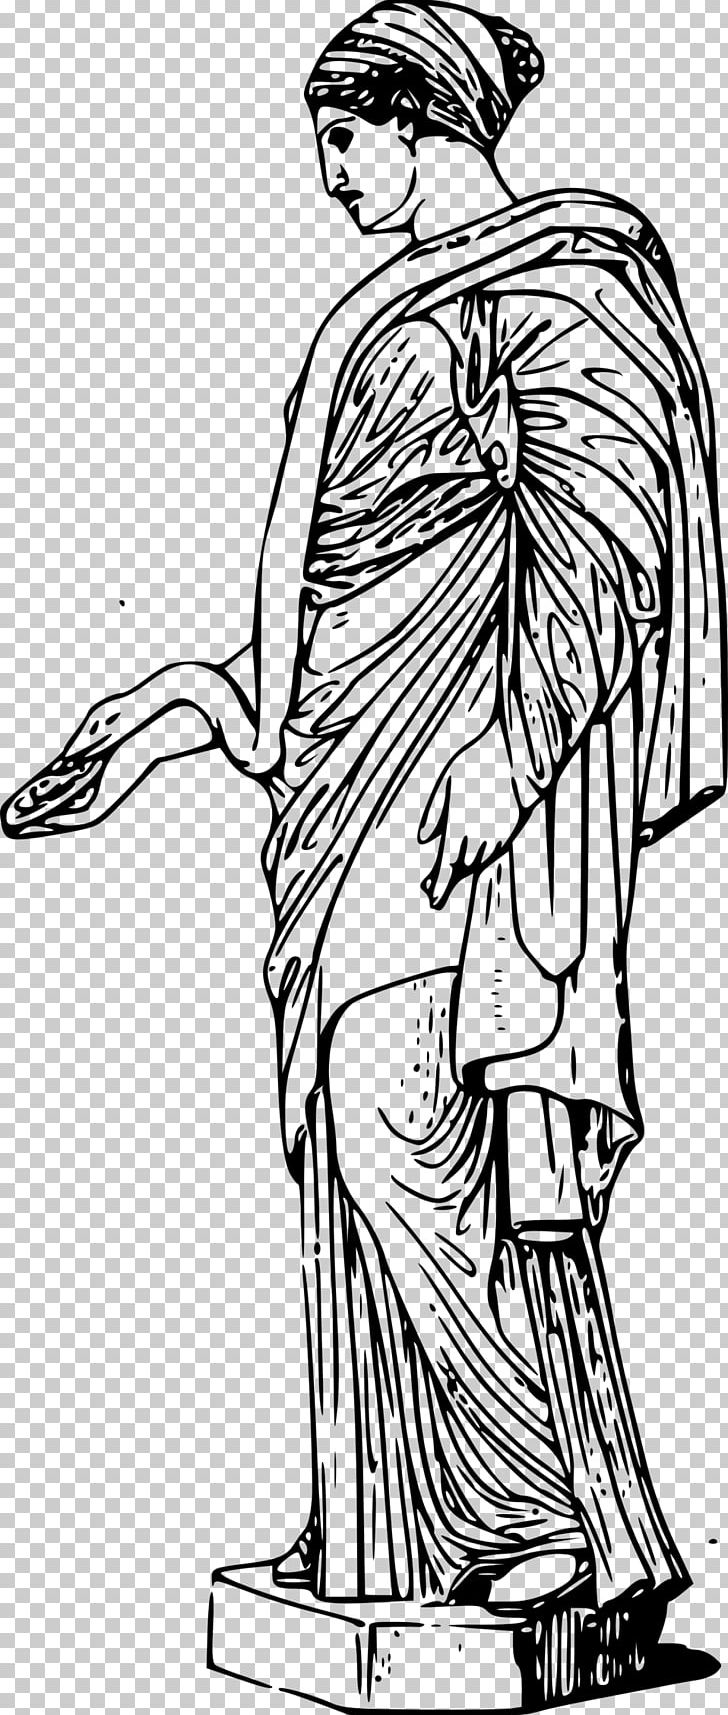 Ancient Greek Sculpture Statue PNG, Clipart, Ancient Greek.